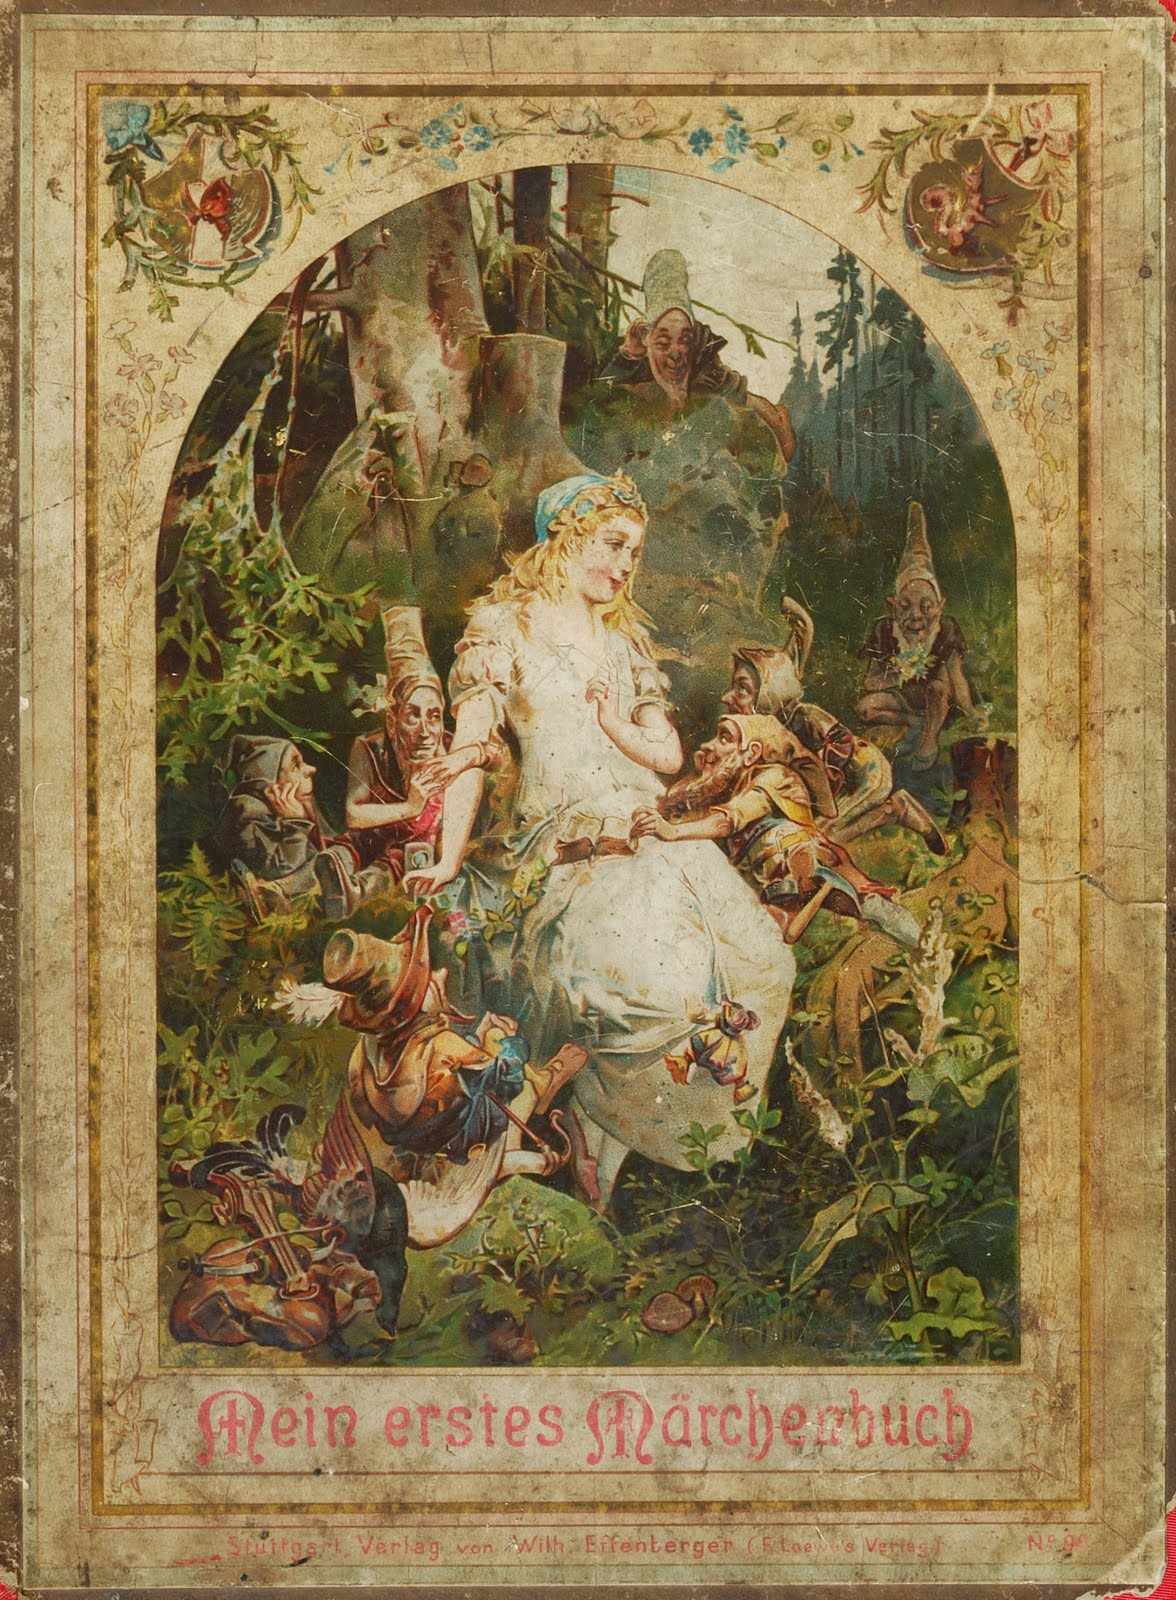 Snow White Book Cover : Vintage ephemera cover of a german fairy tales book